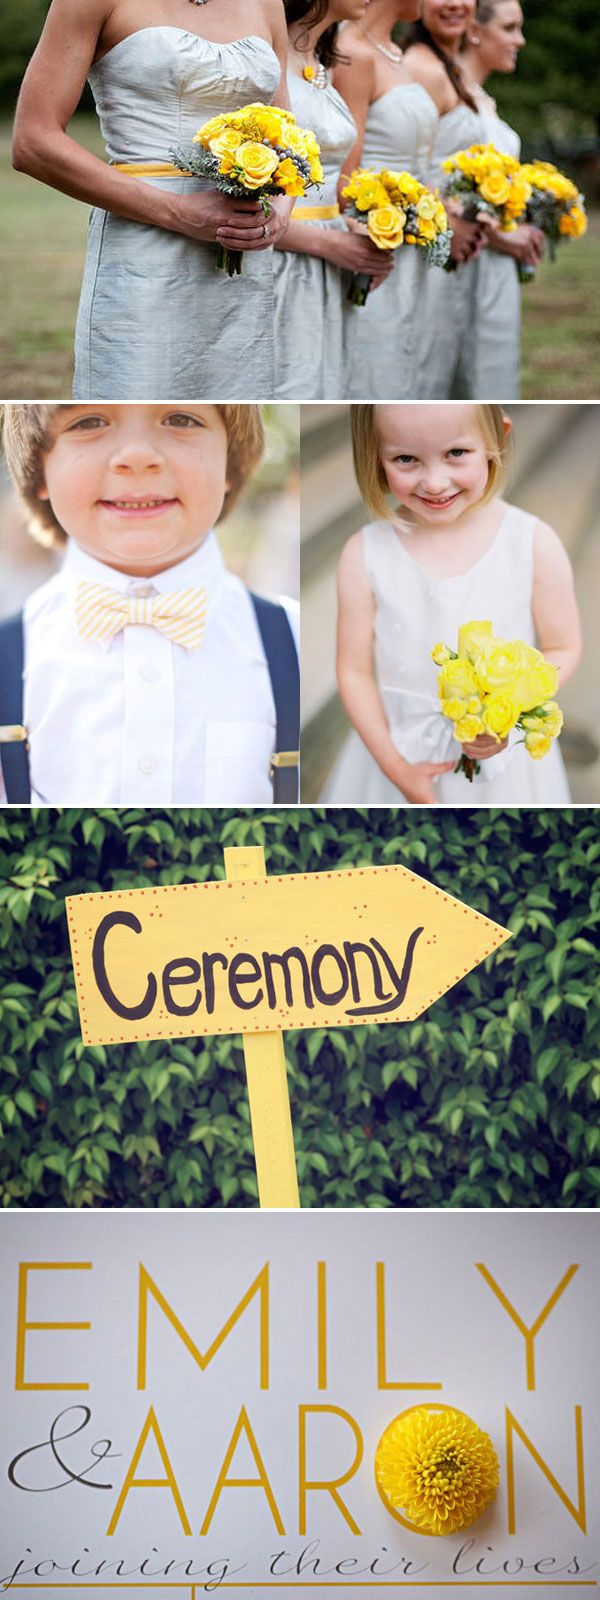 Yellow wedding inspiration: Yellow Weddings, Bows Ties, Bow Ties, Colors Theme, Colors Schemes, Bride, Definitions Wear, Yellow Colors Wedding Theme, Colors Ideas